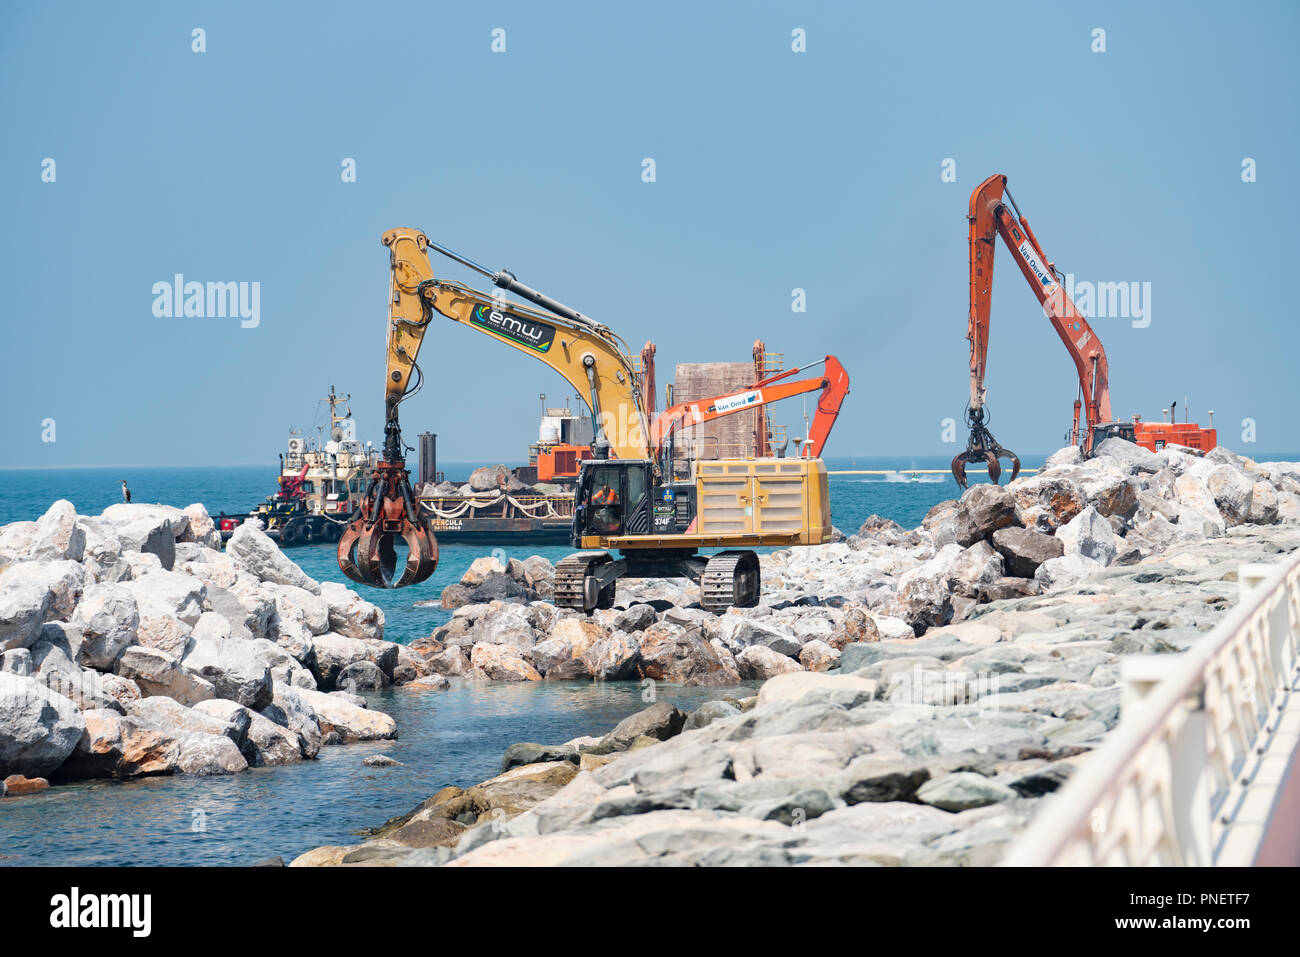 Sea defence construction work by placed large stones on shore on The Palm Jumeirah island in Dubai , United Arab Emirates, UAE. - Stock Image